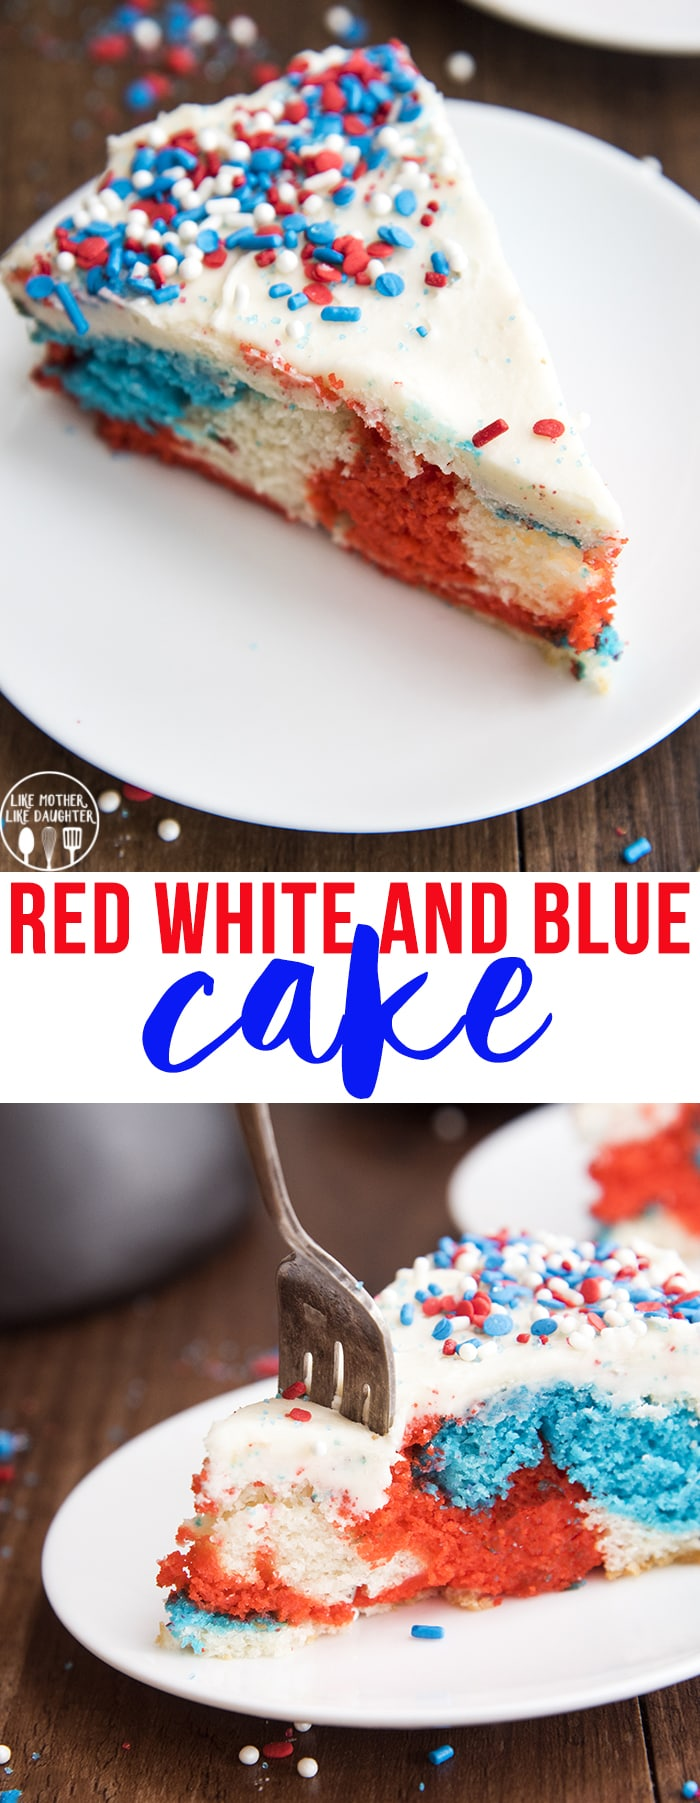 This red white and blue cake is a delicious tie dye cake topped with an easy buttercream frosting, perfect for Memorial Day or the Fourth of July!